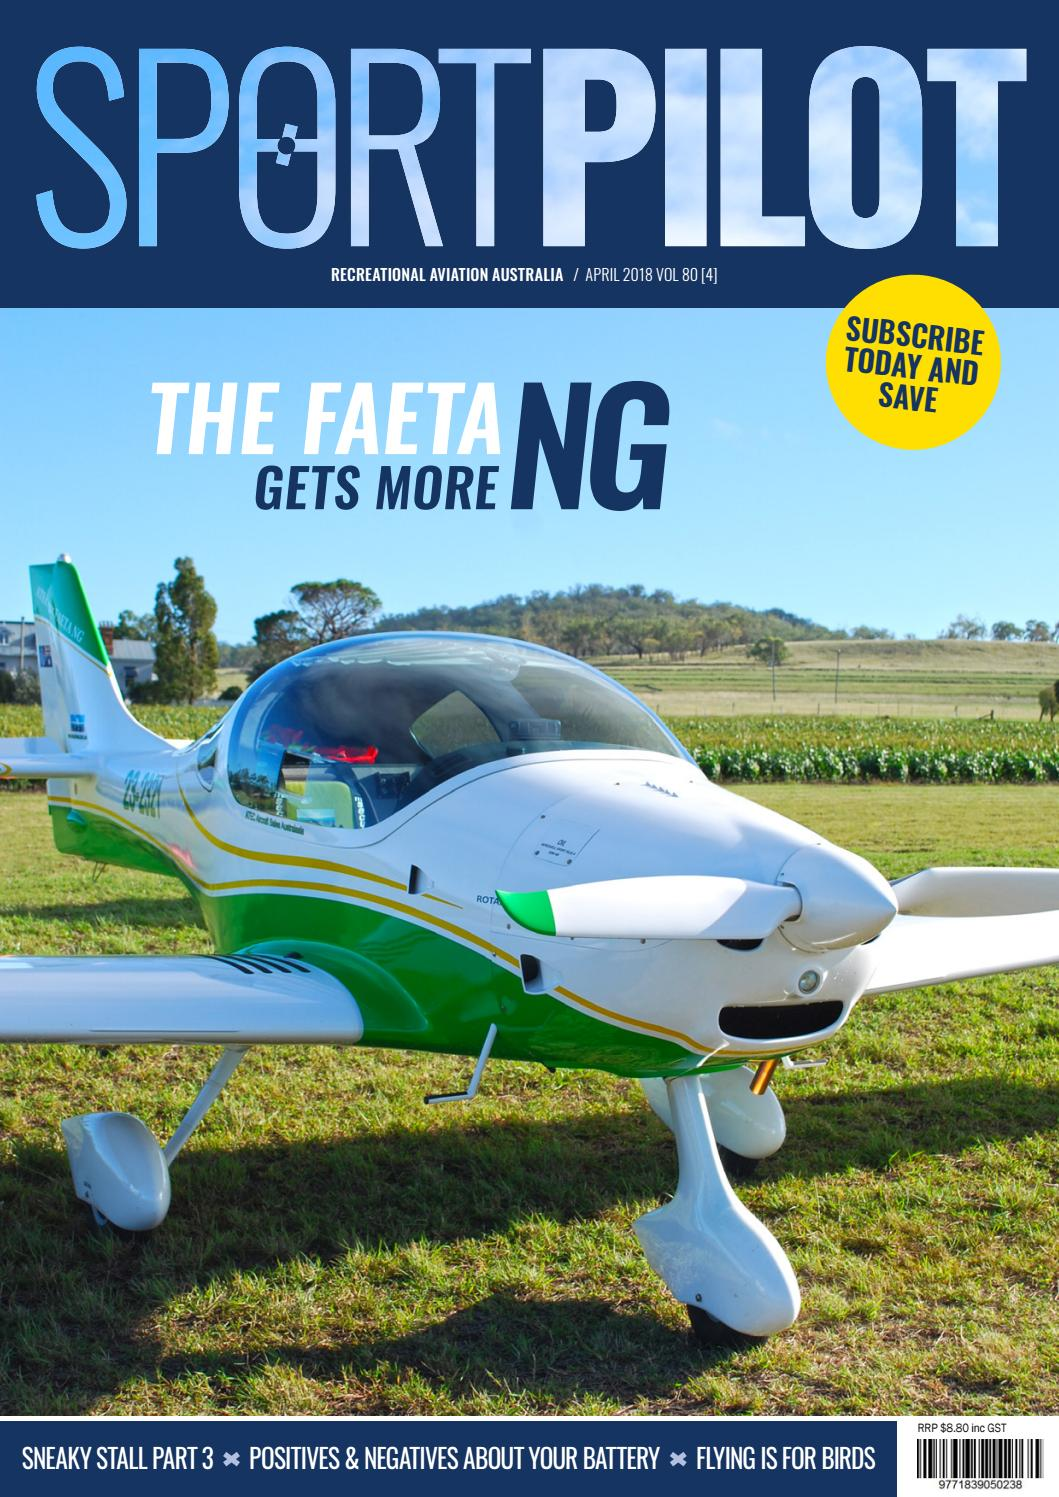 Sport pilot 80 apr 2018 by Recreational Aviation Australia - issuu